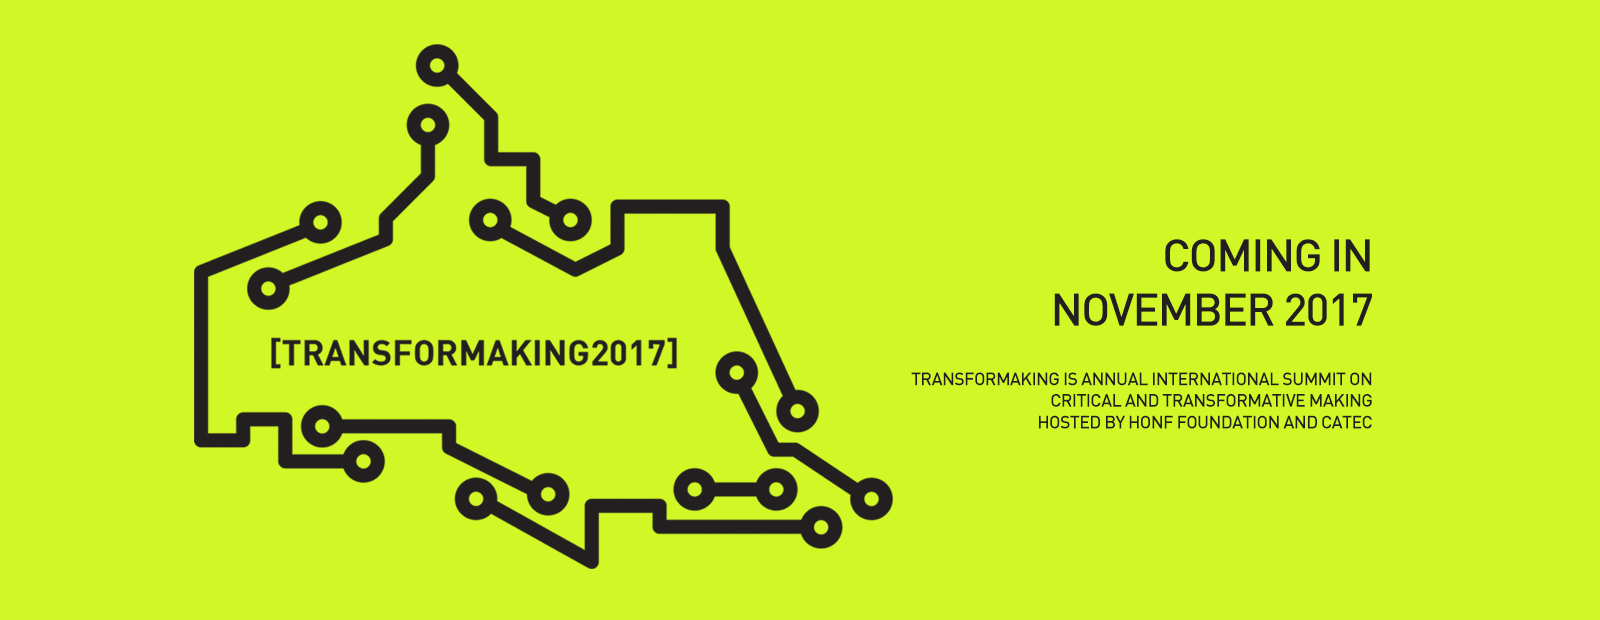 Transformaking 2017 - international summit on critical & transformative making